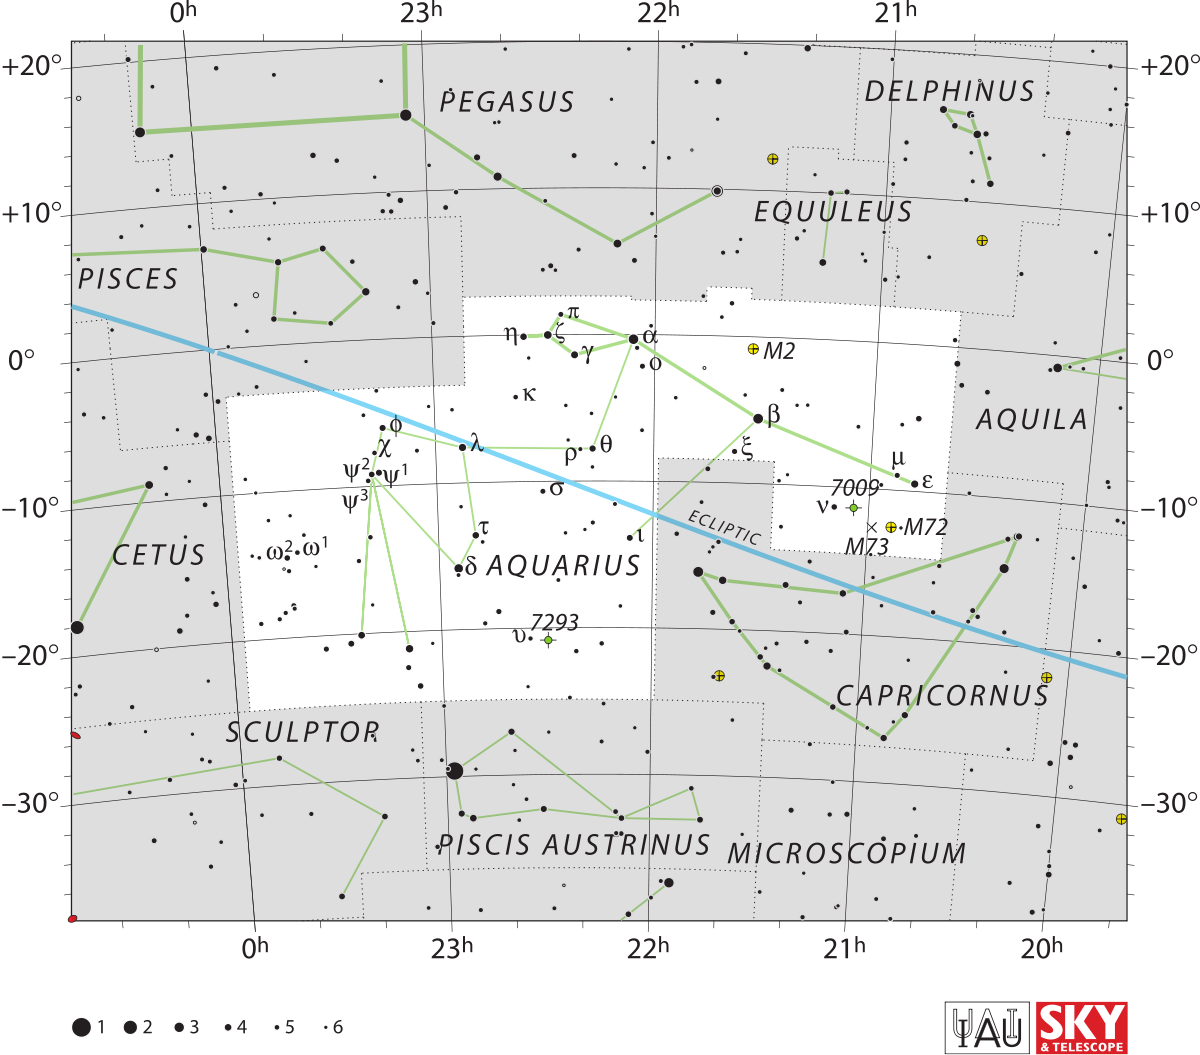 Constellations drawing old. Aquarius constellation wikipedia